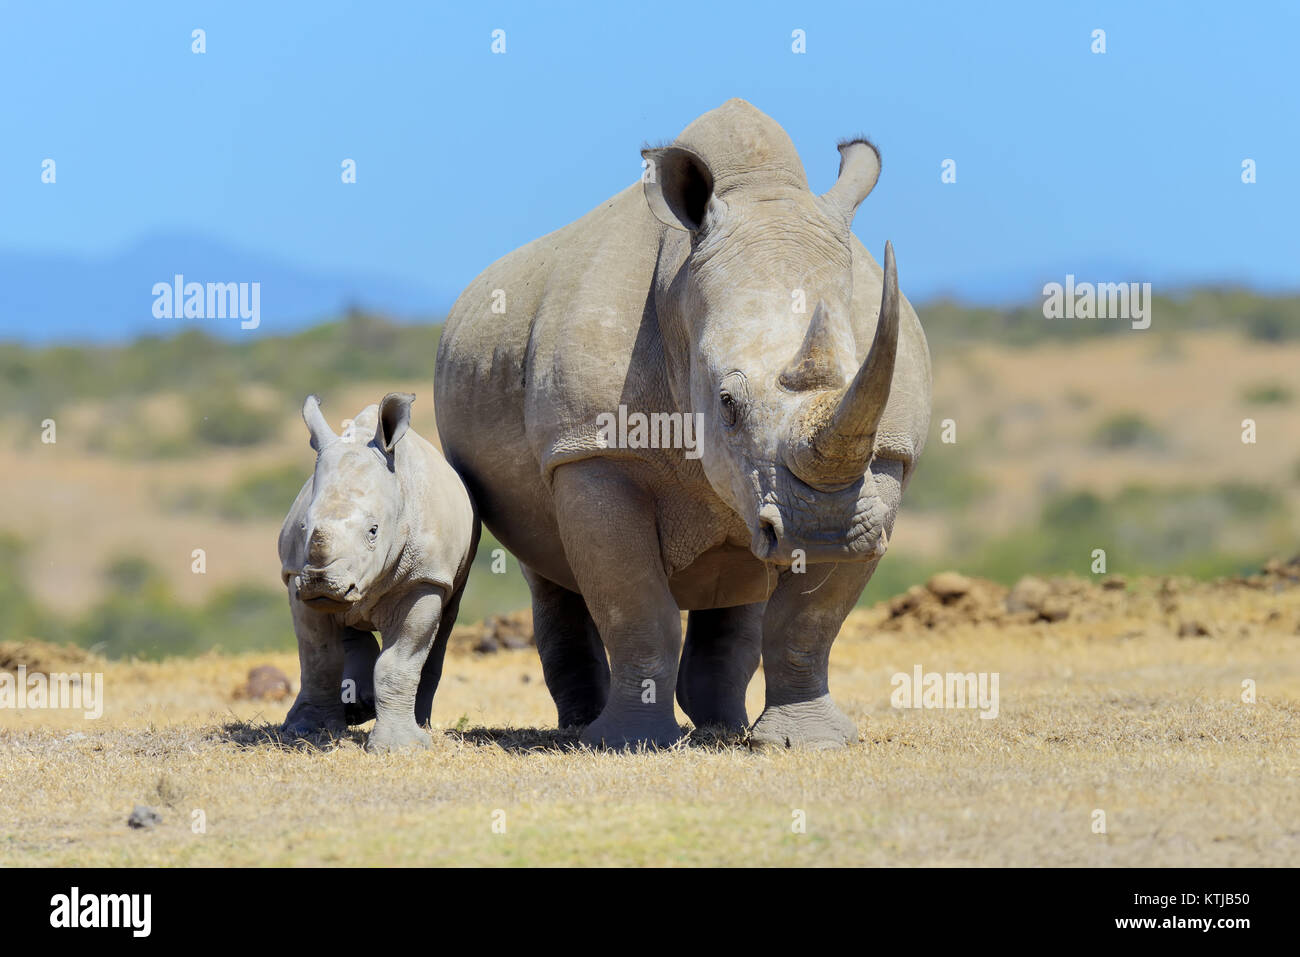 African white rhino, National park of Kenya, Africa - Stock Image